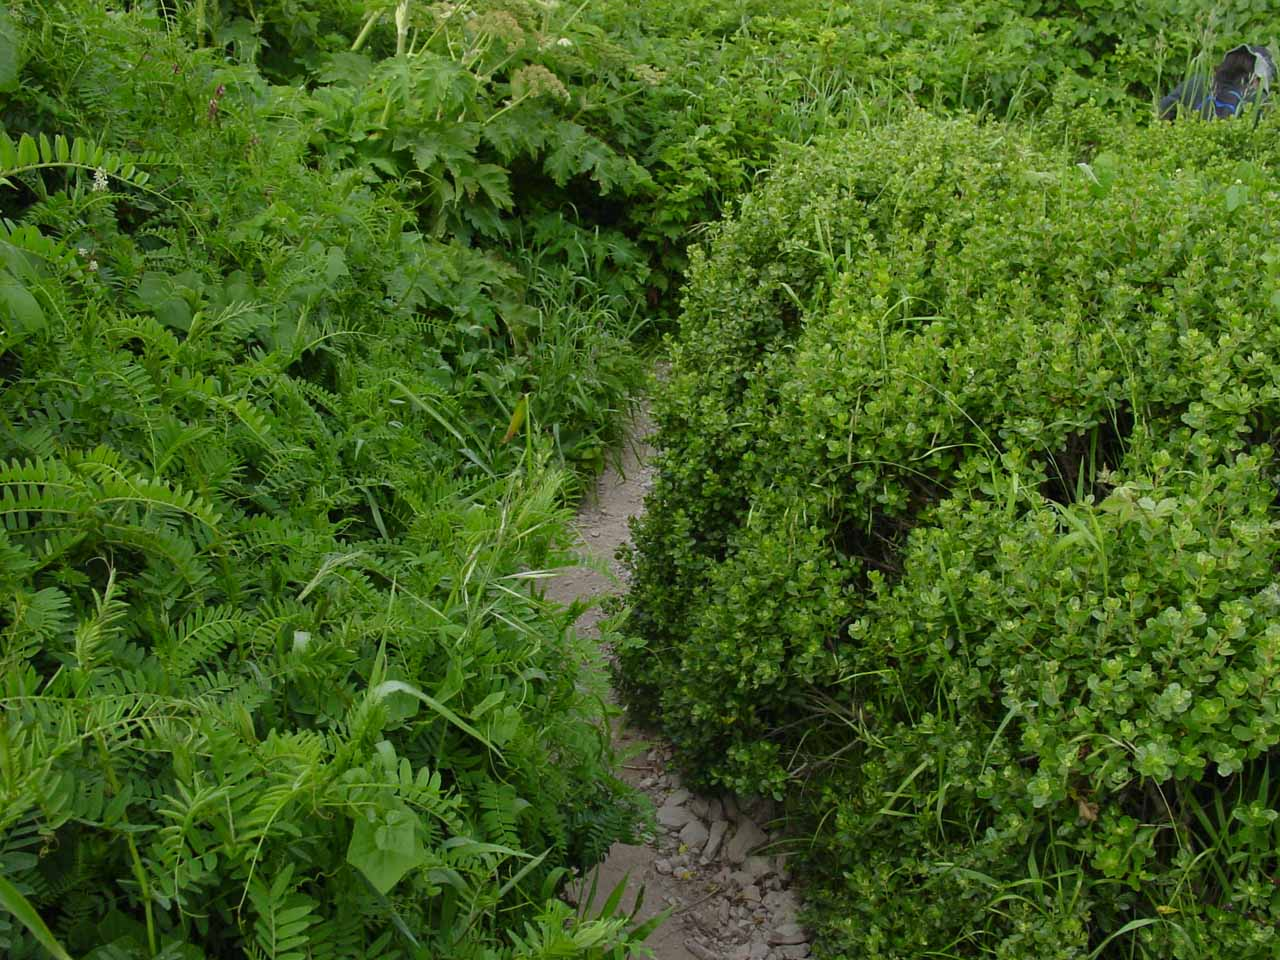 Within the thin and narrow and overgrown part of the trail